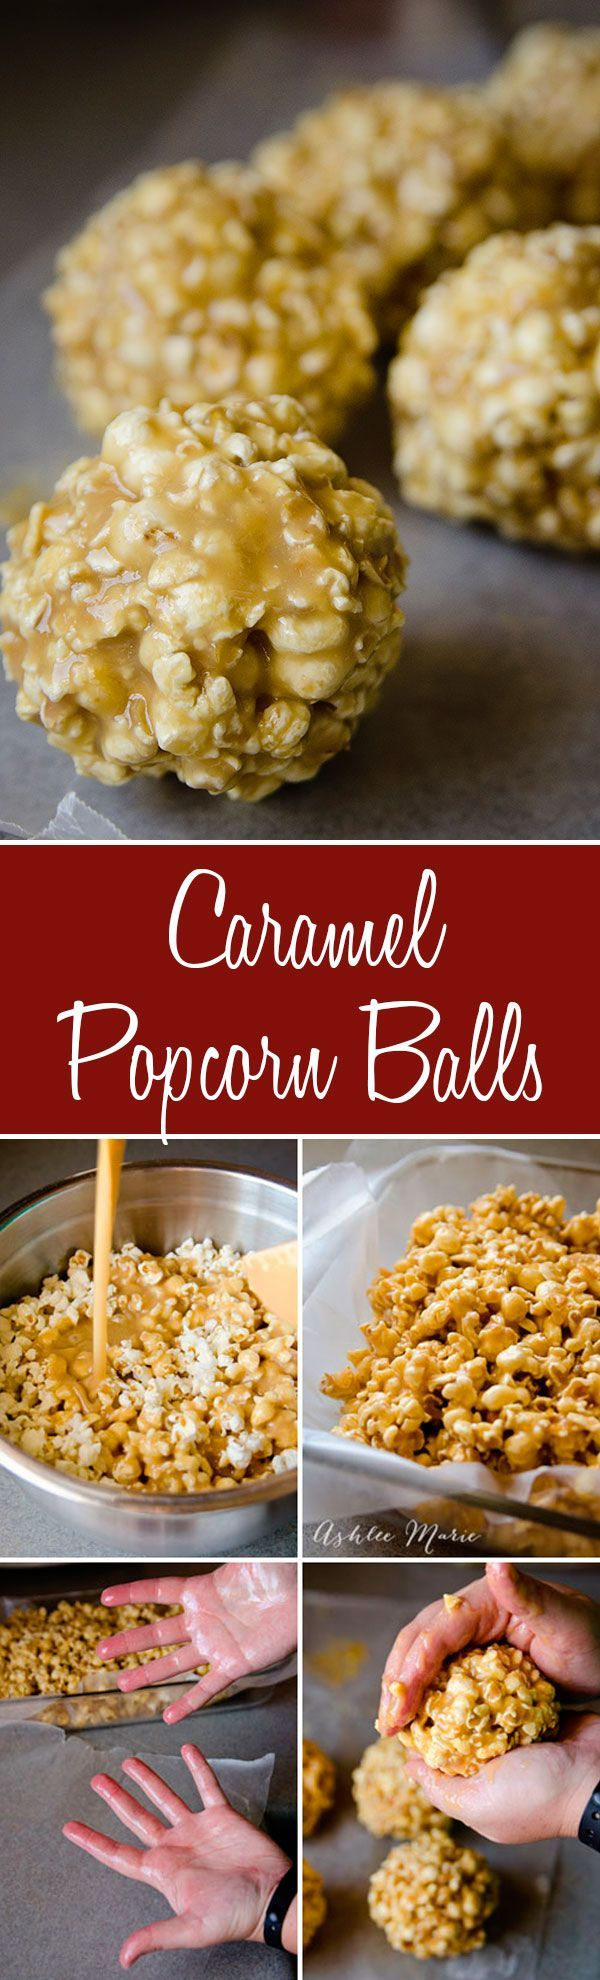 We love caramel popcorn at our house, this recipe is easy to make, has a great buttery flavor and tastes divine.  Let it cool and form into balls if you want to easily give some away as a gift, full video tutorial to help